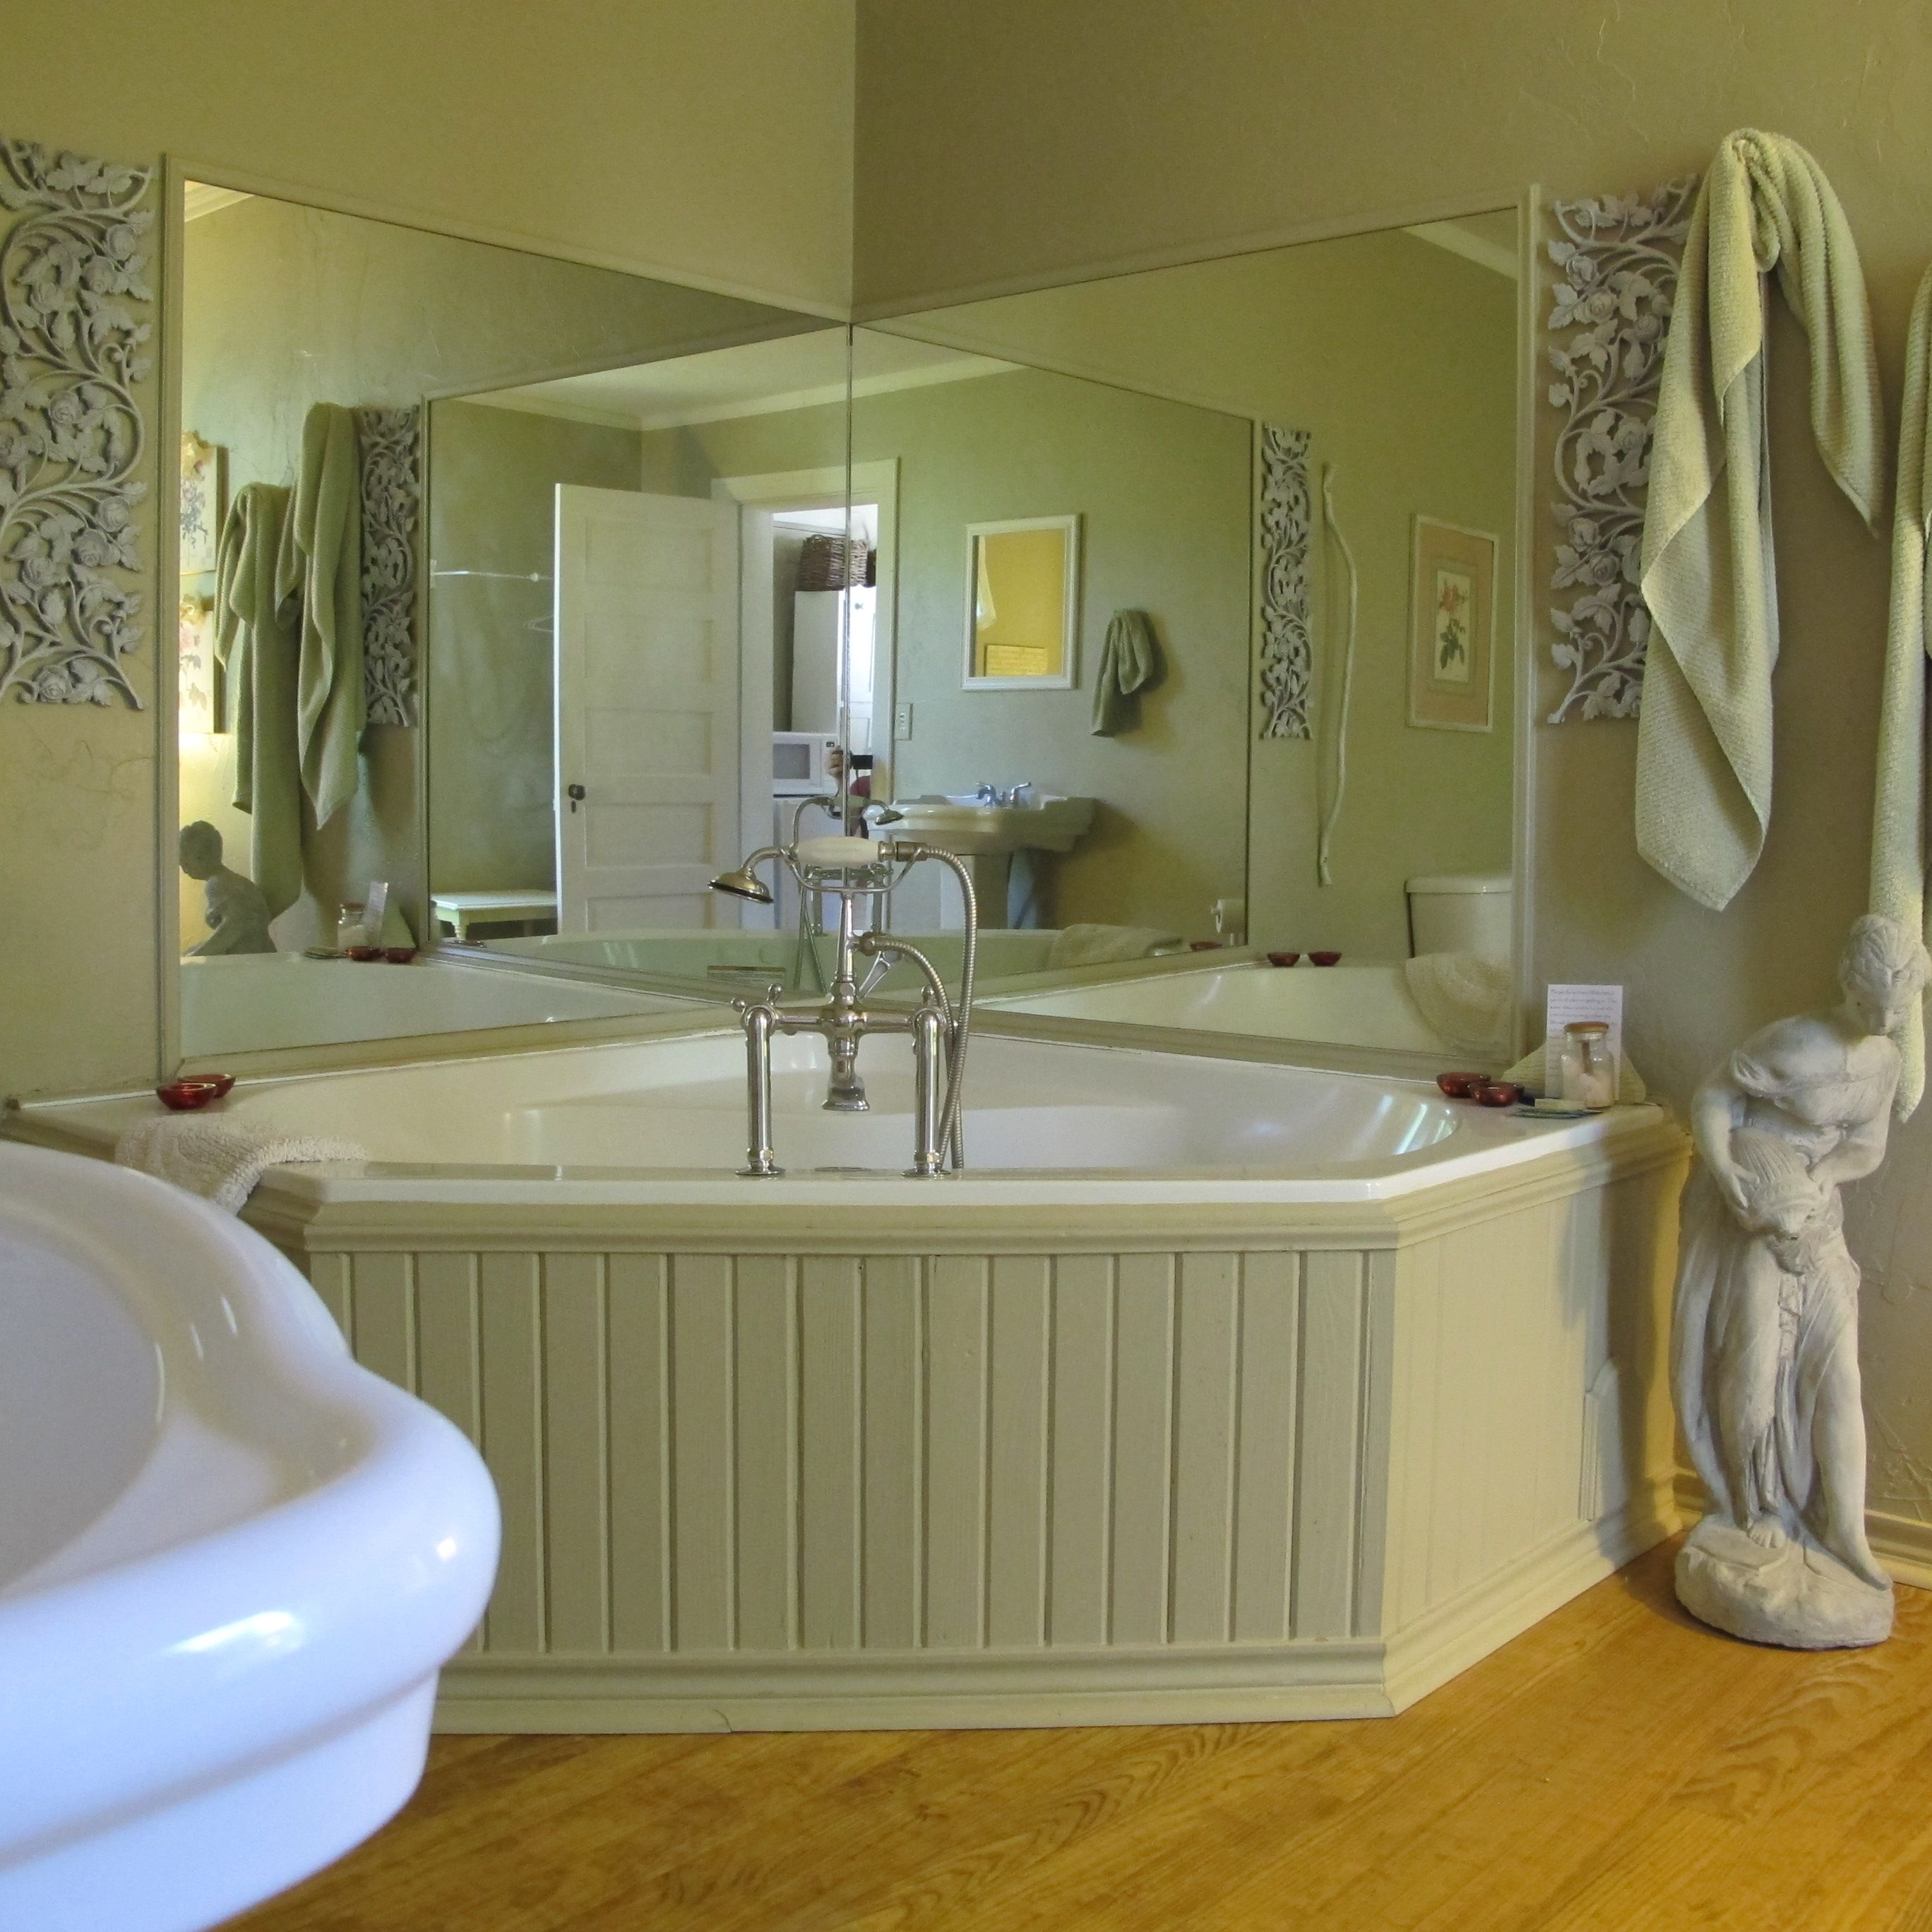 oversized private bathtubs | The Wildrose Retreat, now this is romance, large jacuzzi ...